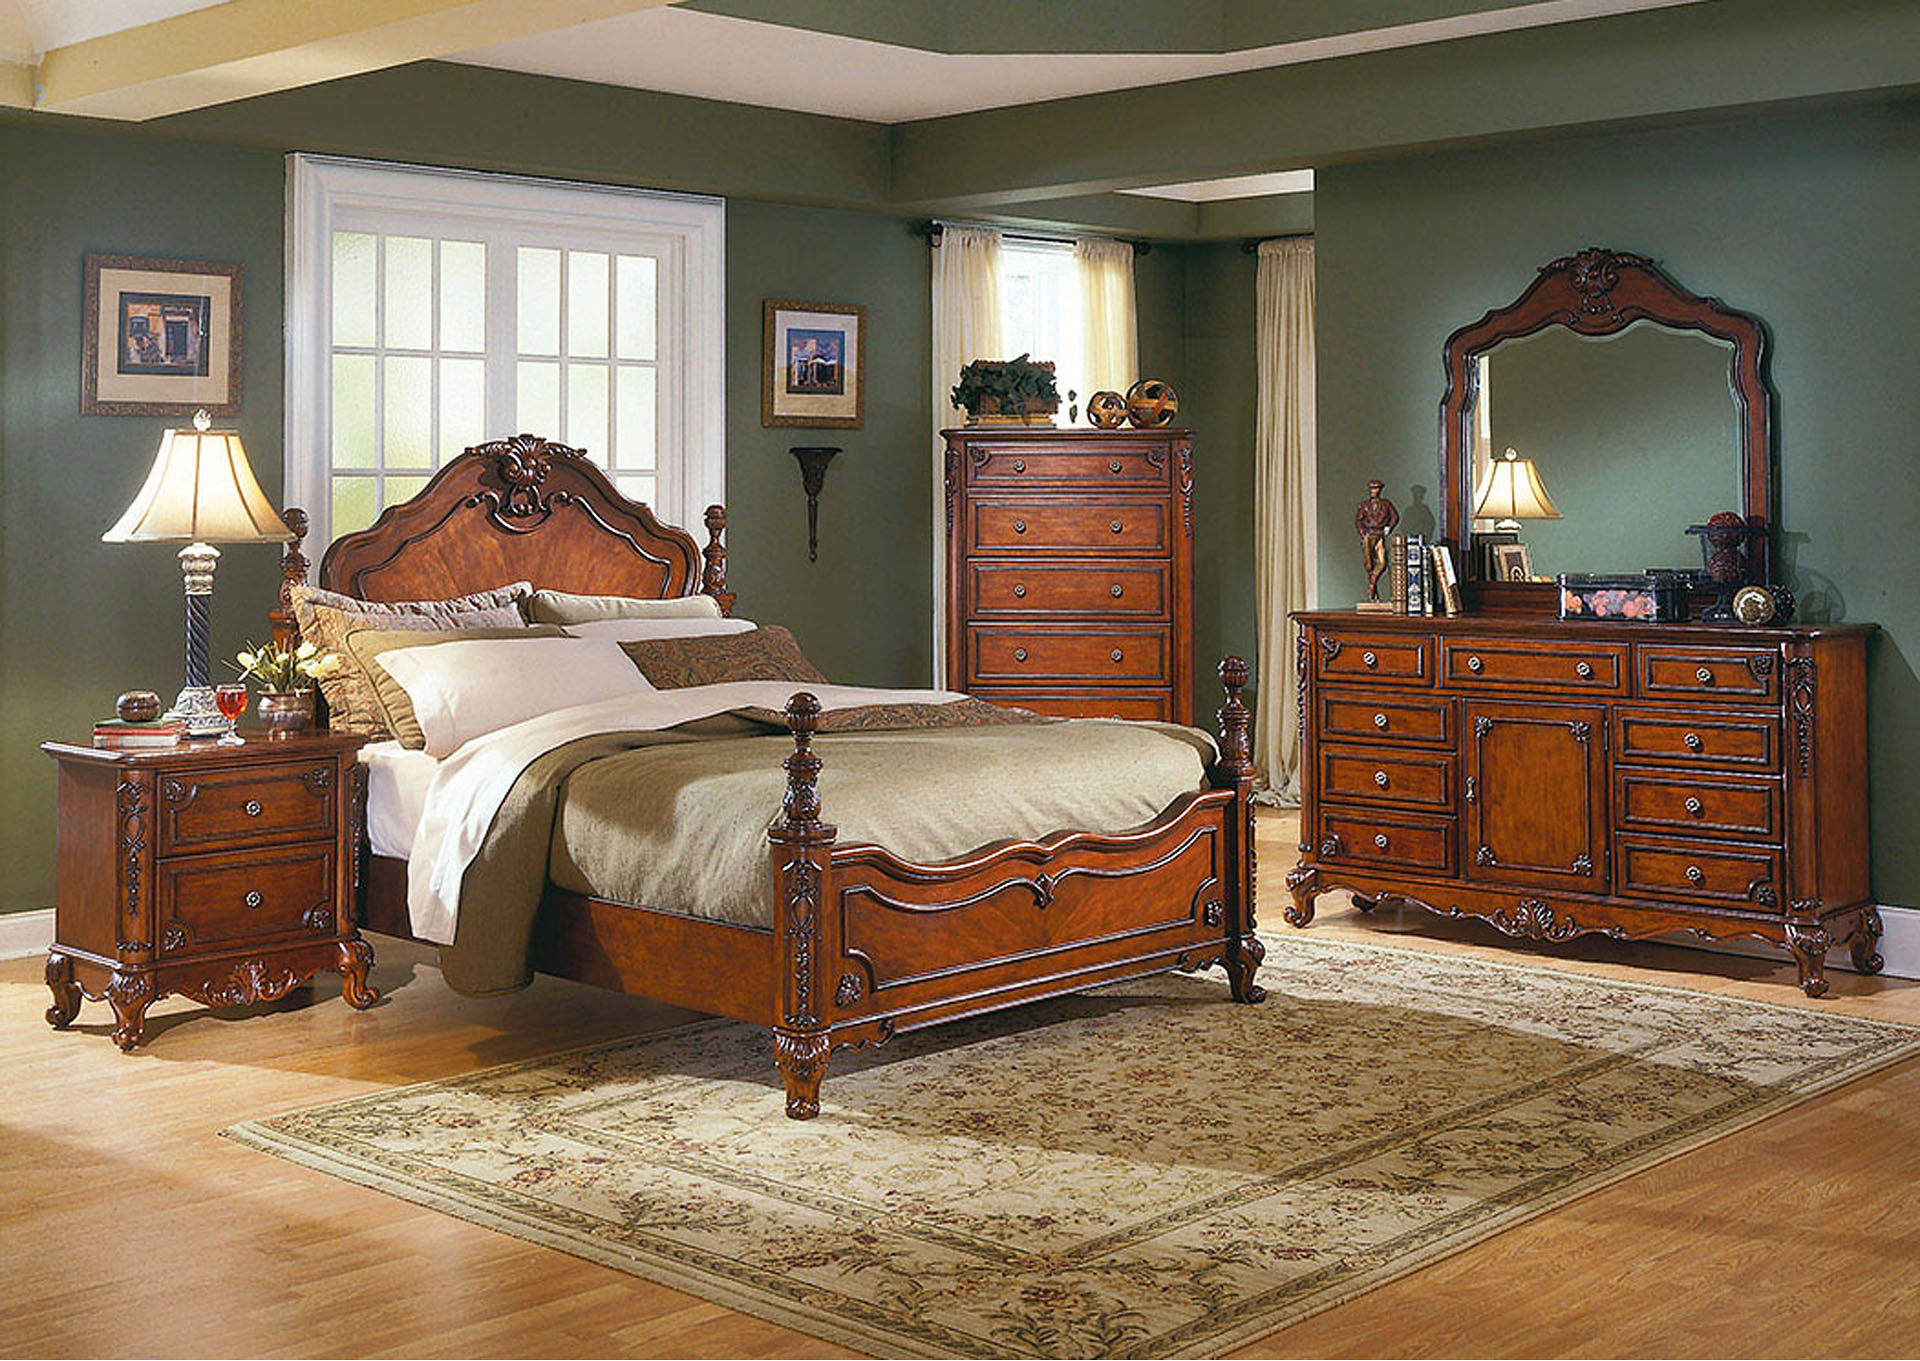 Madaleine Warm Cherry Dresser,Homelegance